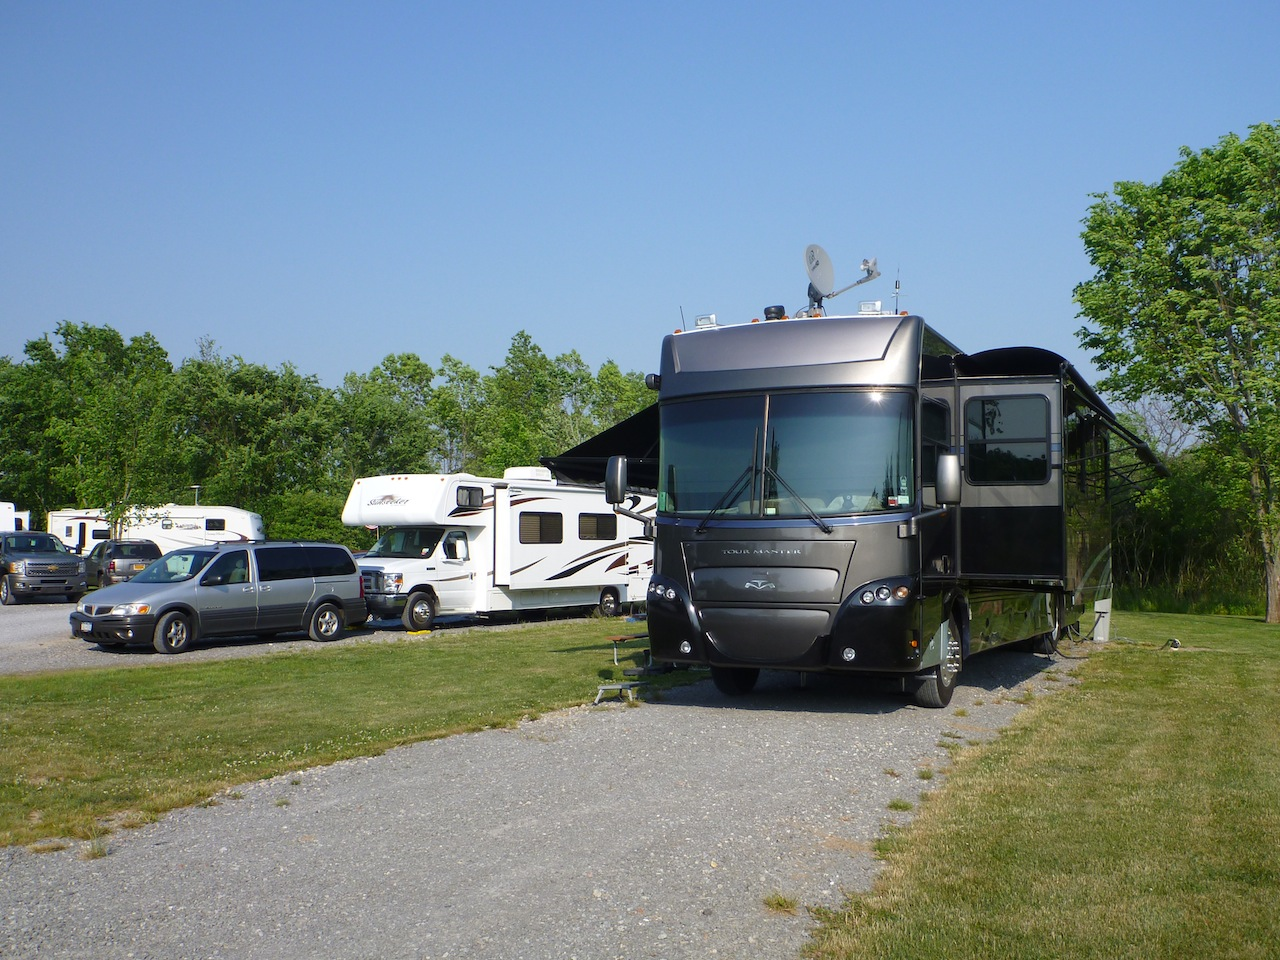 Our Spot At The Campground In Grand Island, NY.  Our Friends Class C Next To Us.